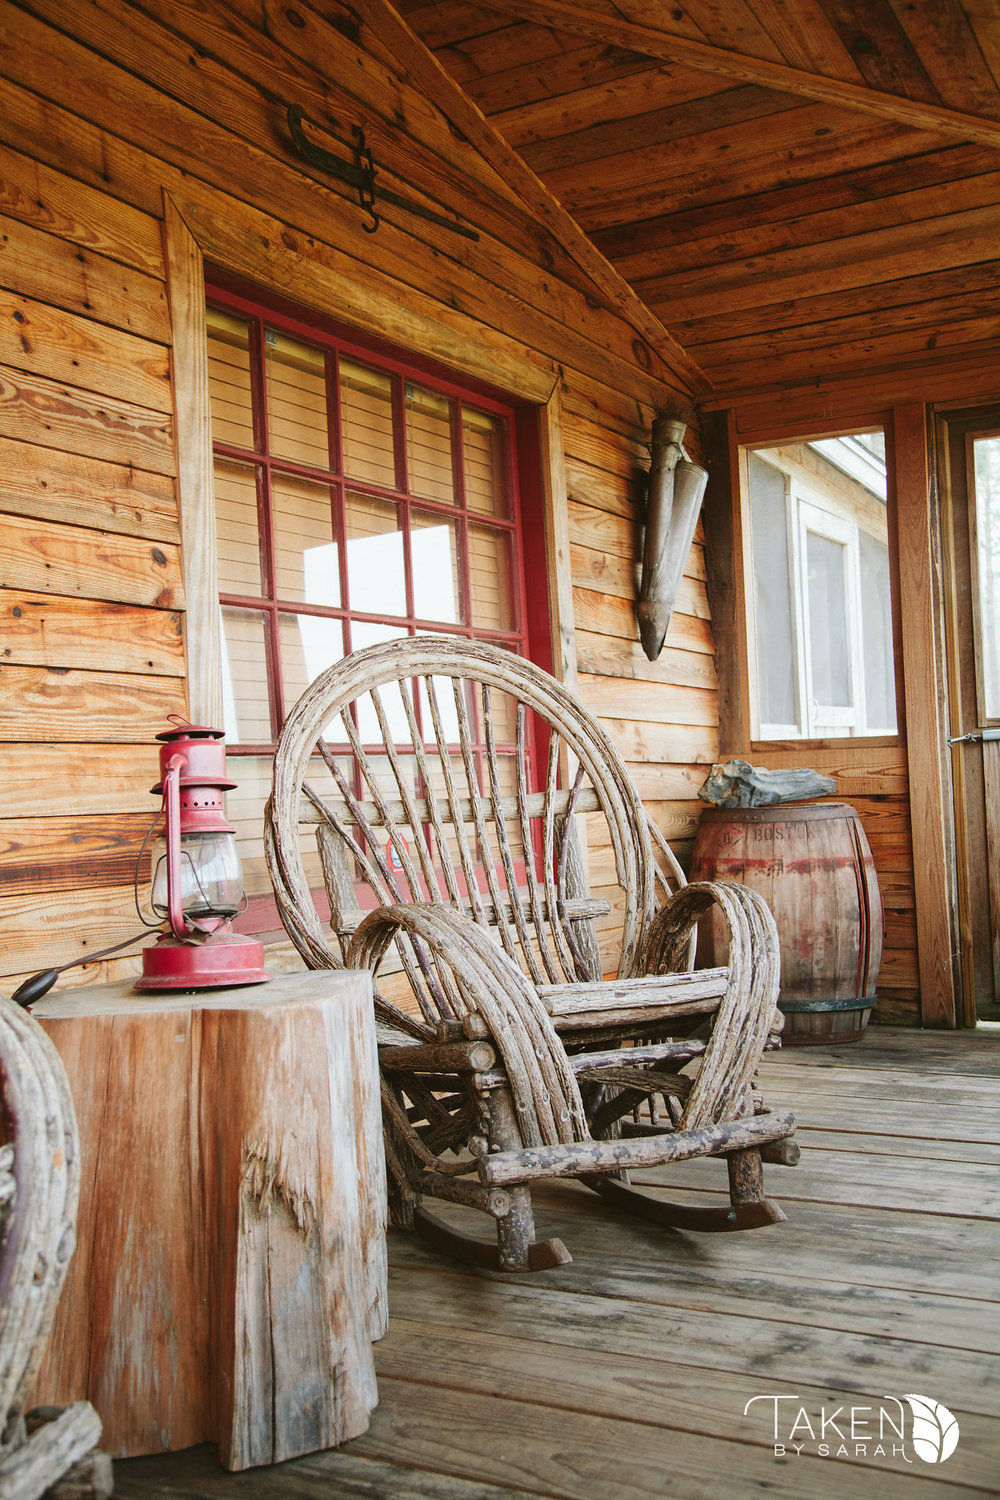 The Cabin at Hidden Acres | Taken by Sarah Photography